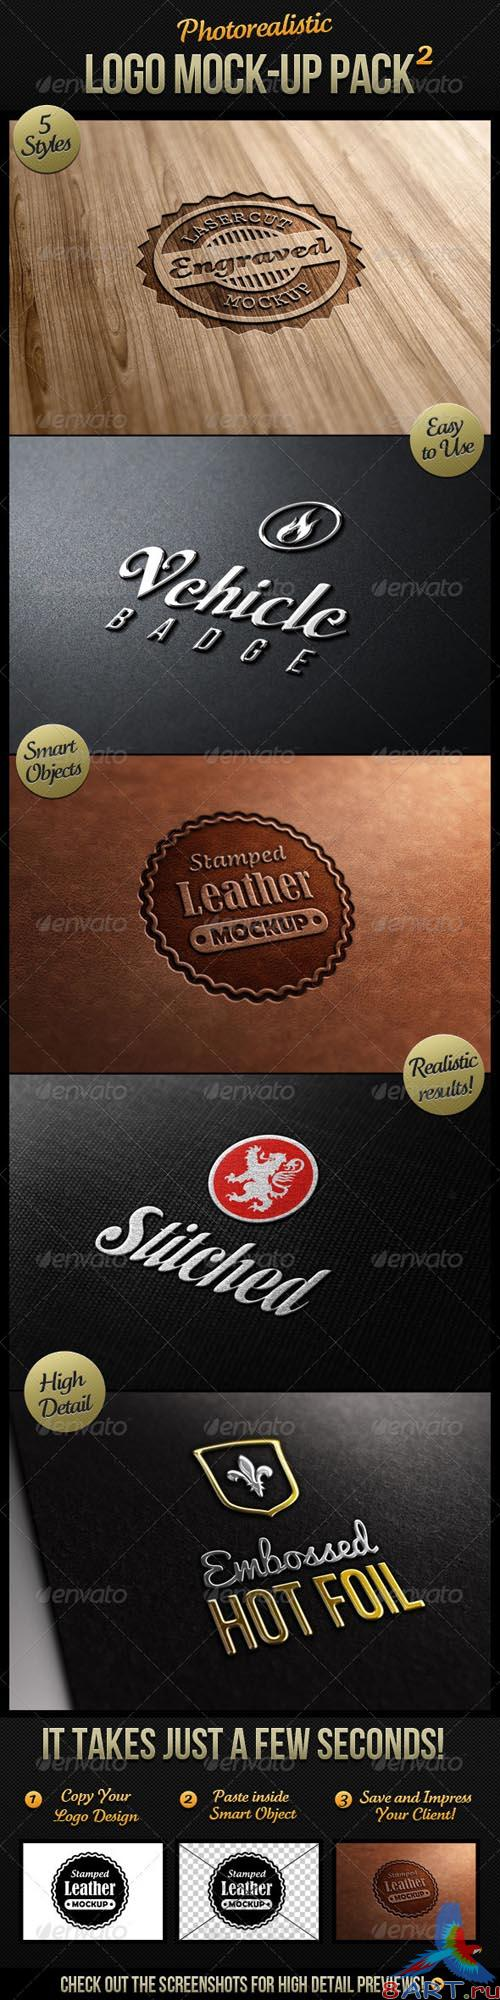 GraphicRiver Photorealistic Logo Mock-Up Pack 2 - REUPLOAD